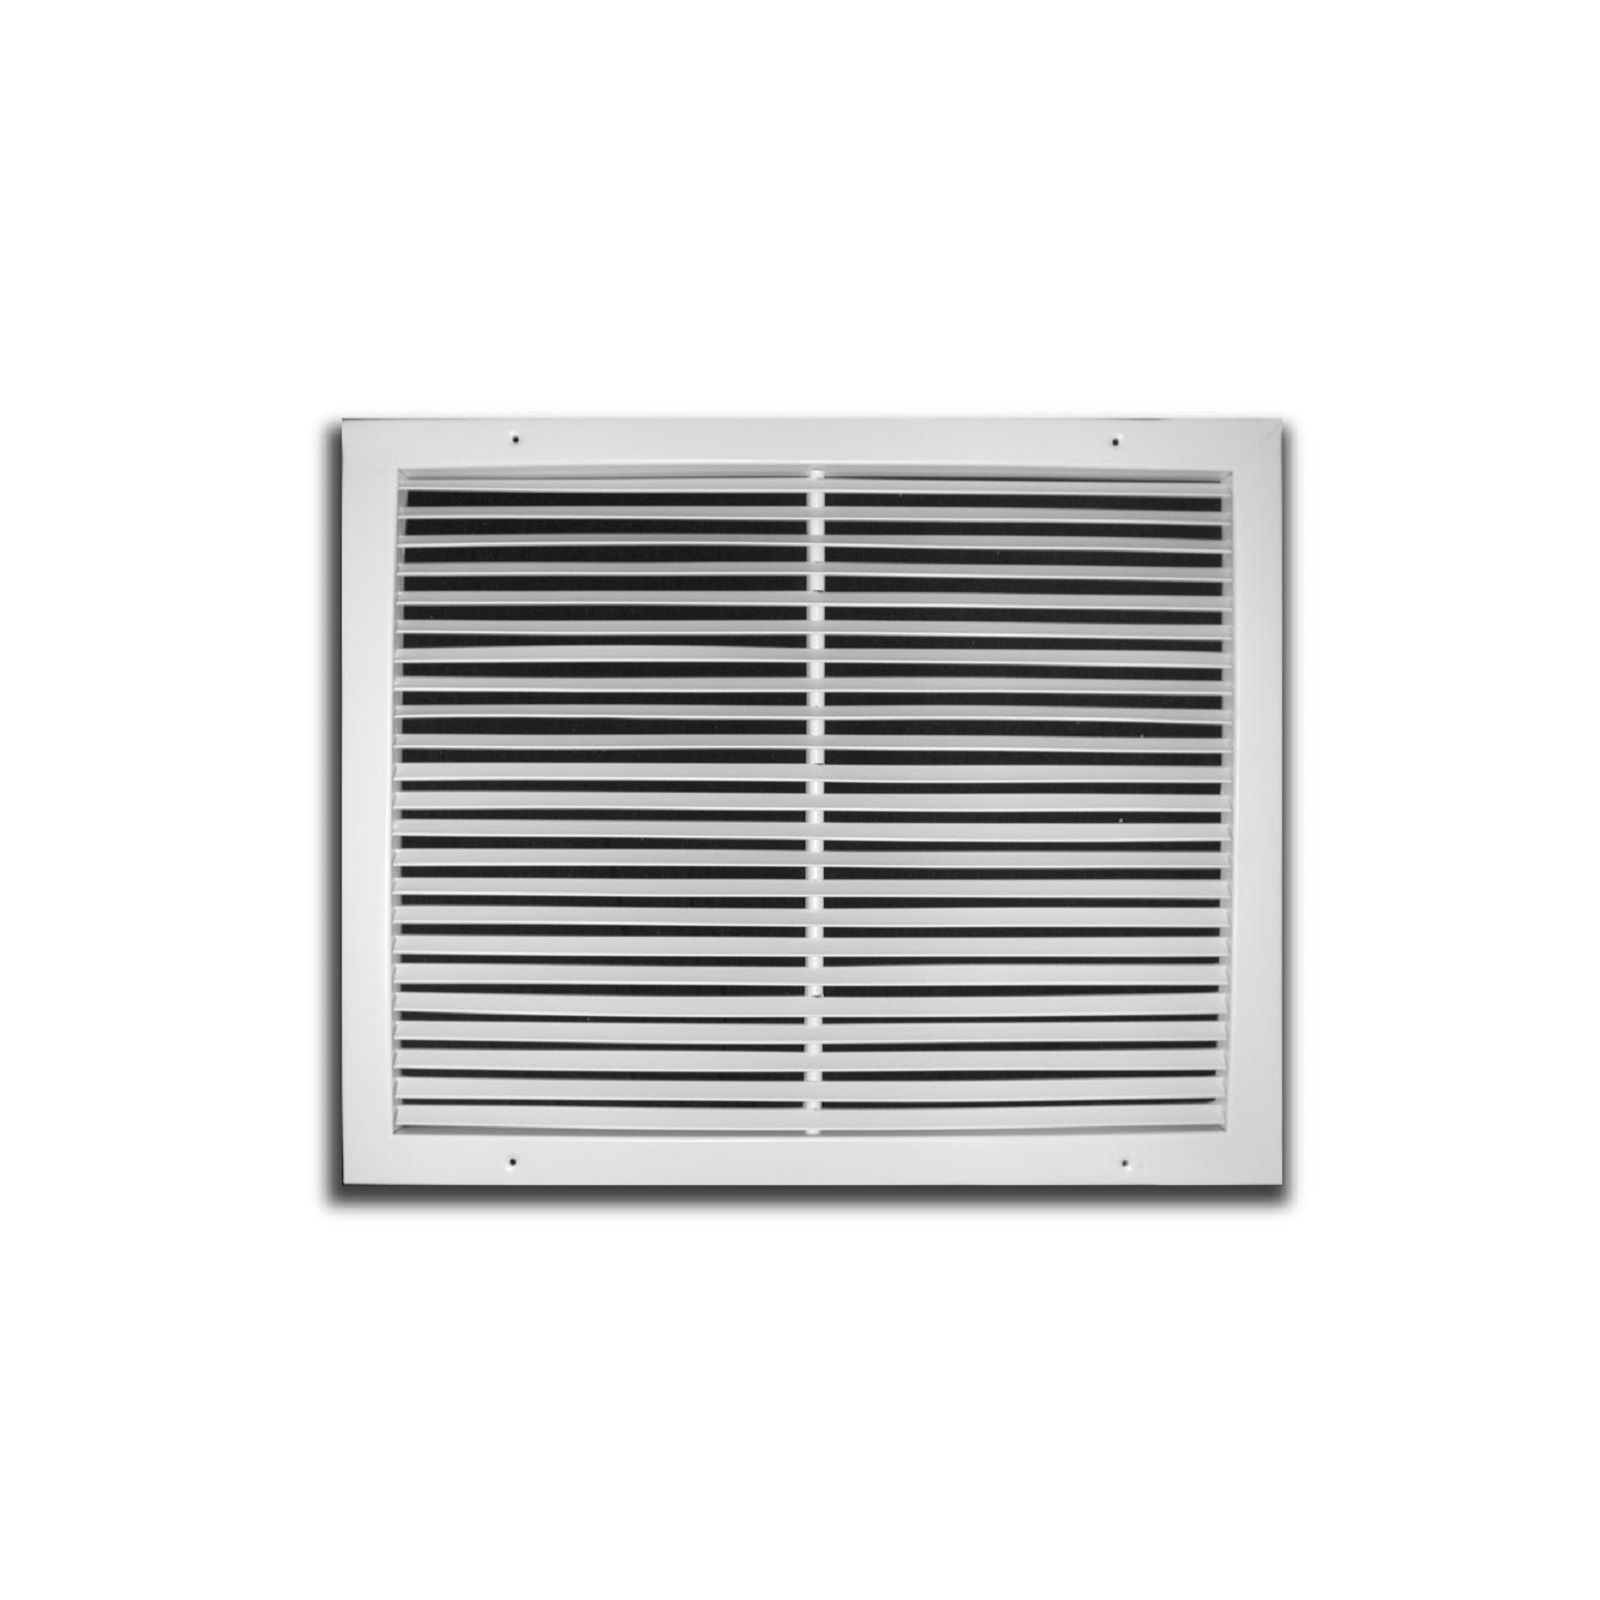 "TRUaire 270 12X06 - Steel Fixed Bar Return Air Grille, White, 12"" X 06"""